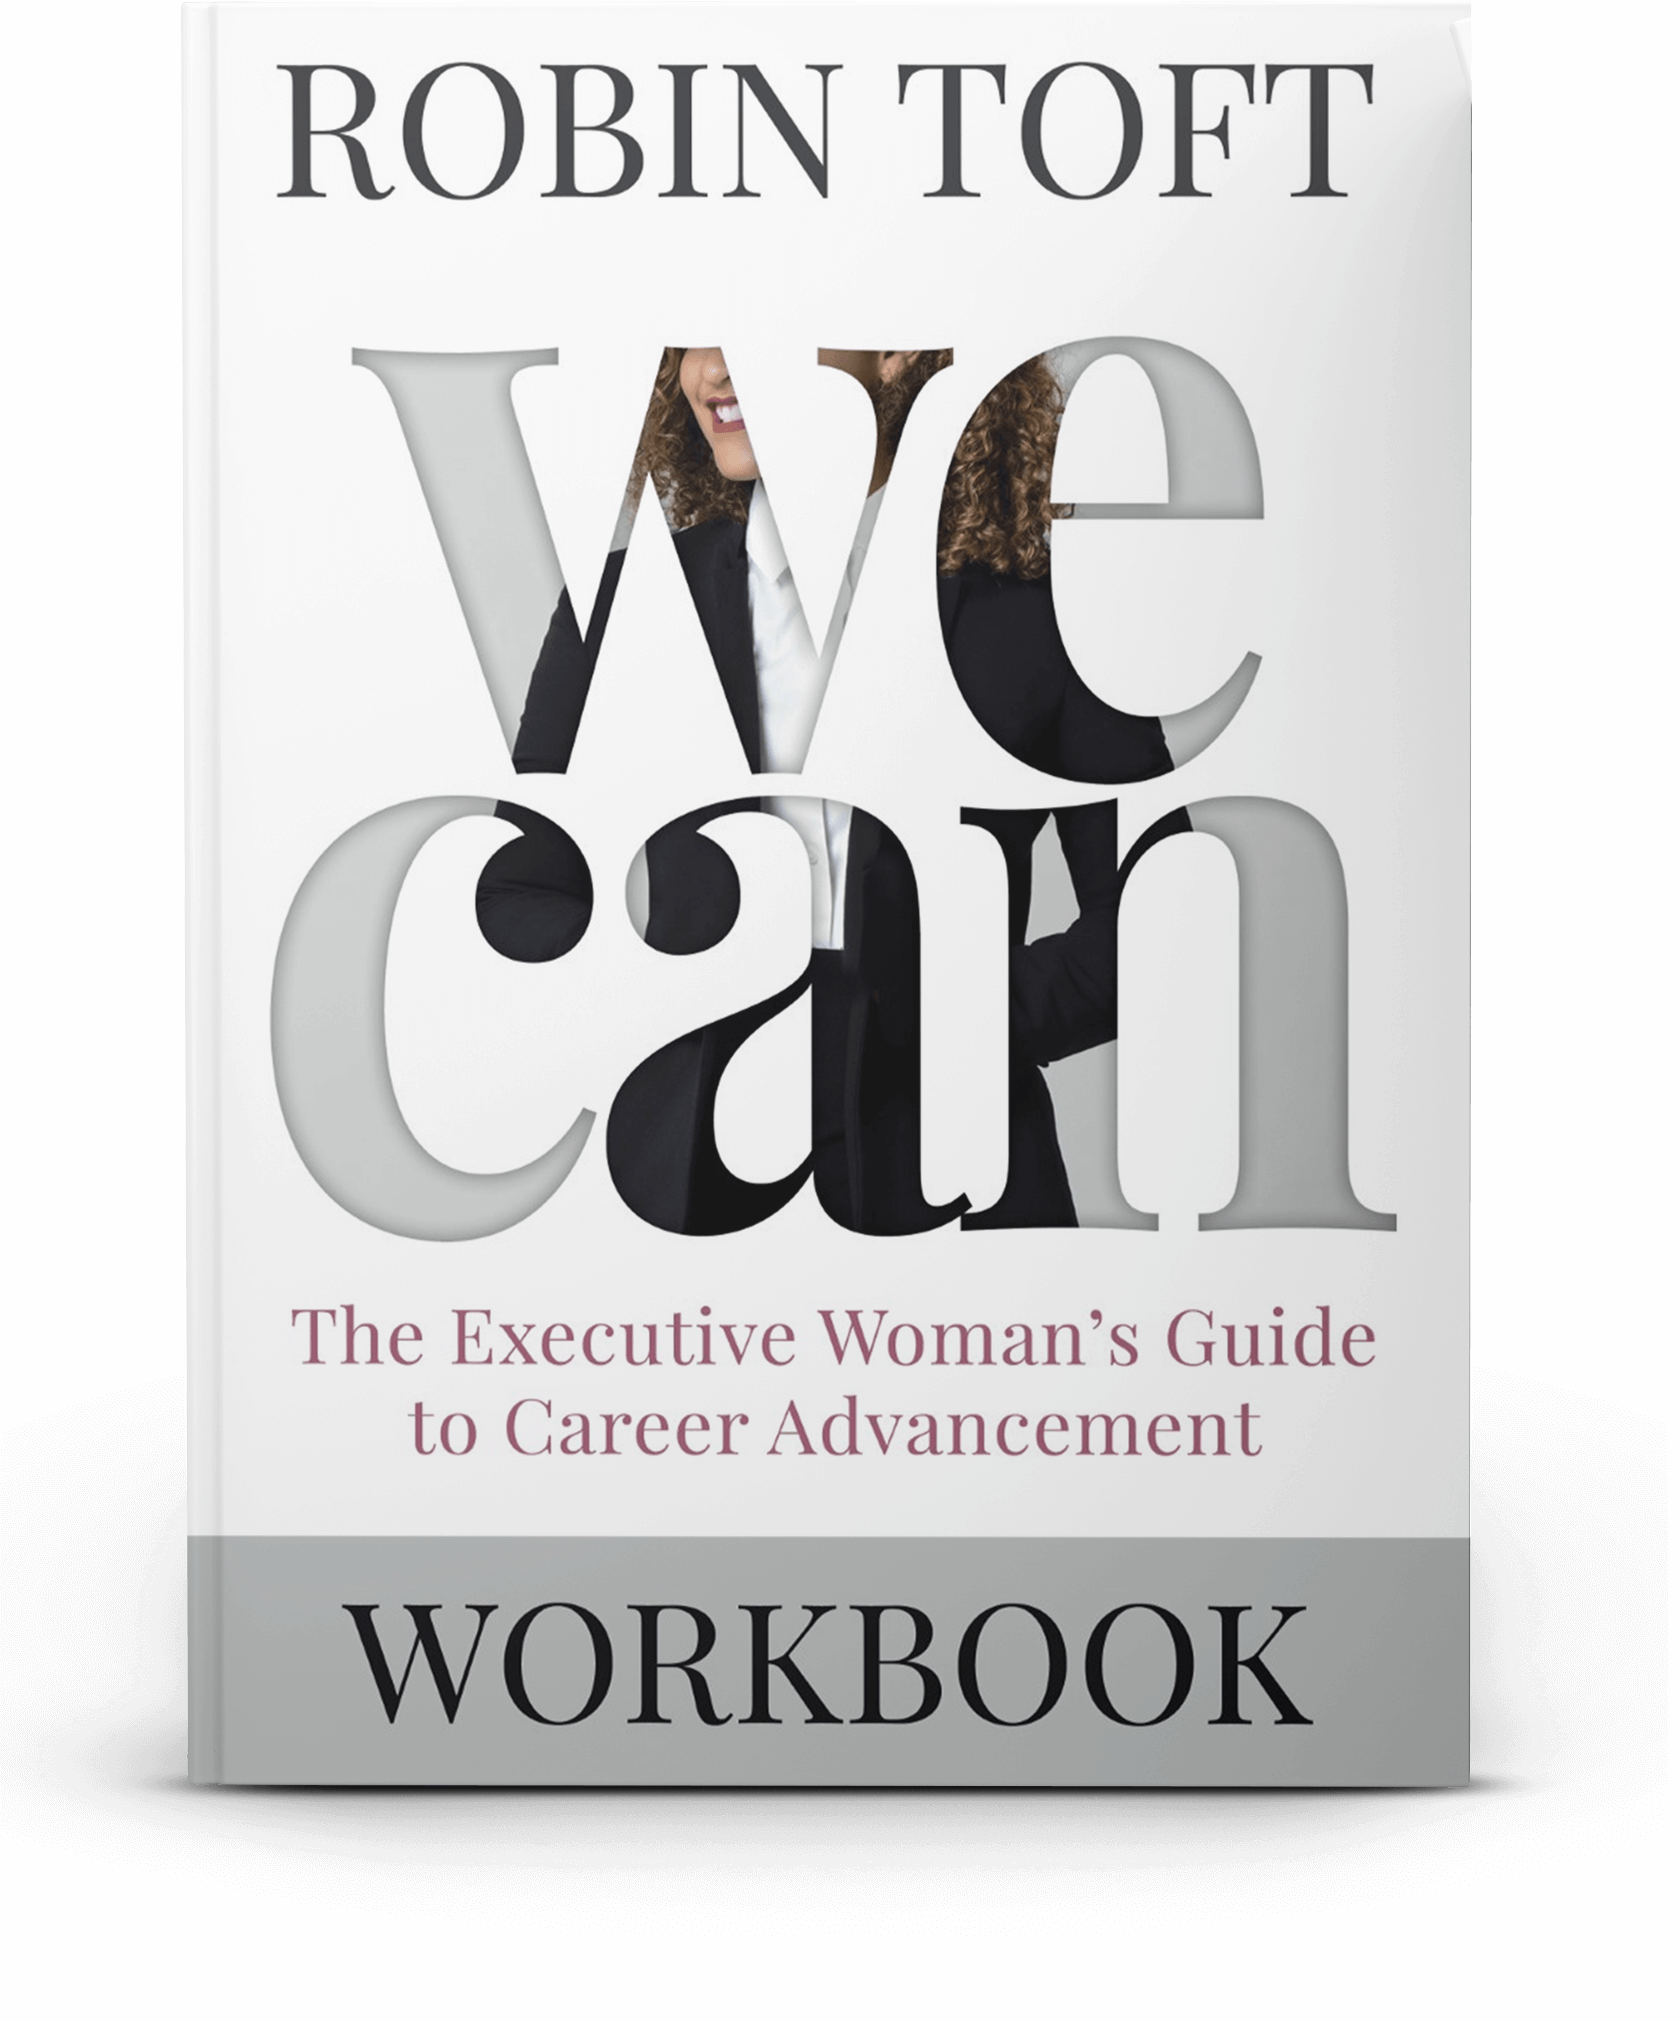 The We CAN Workbook